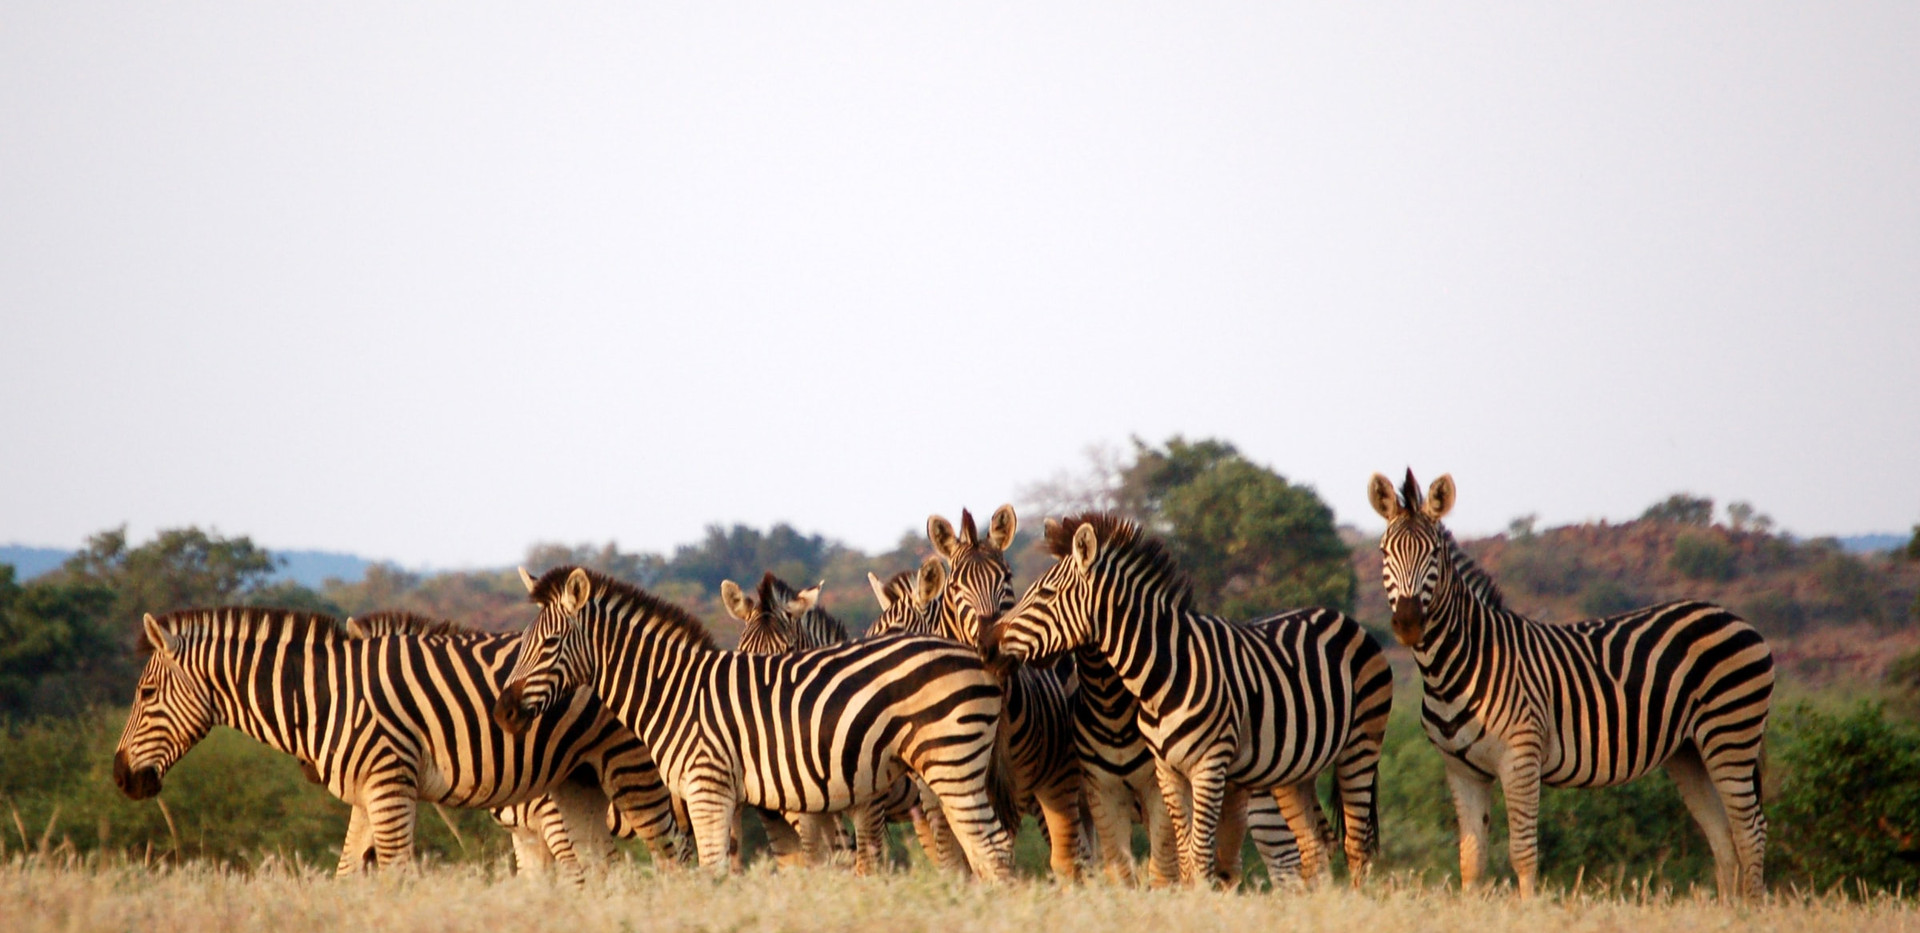 Zebras in Tuli Wilderness